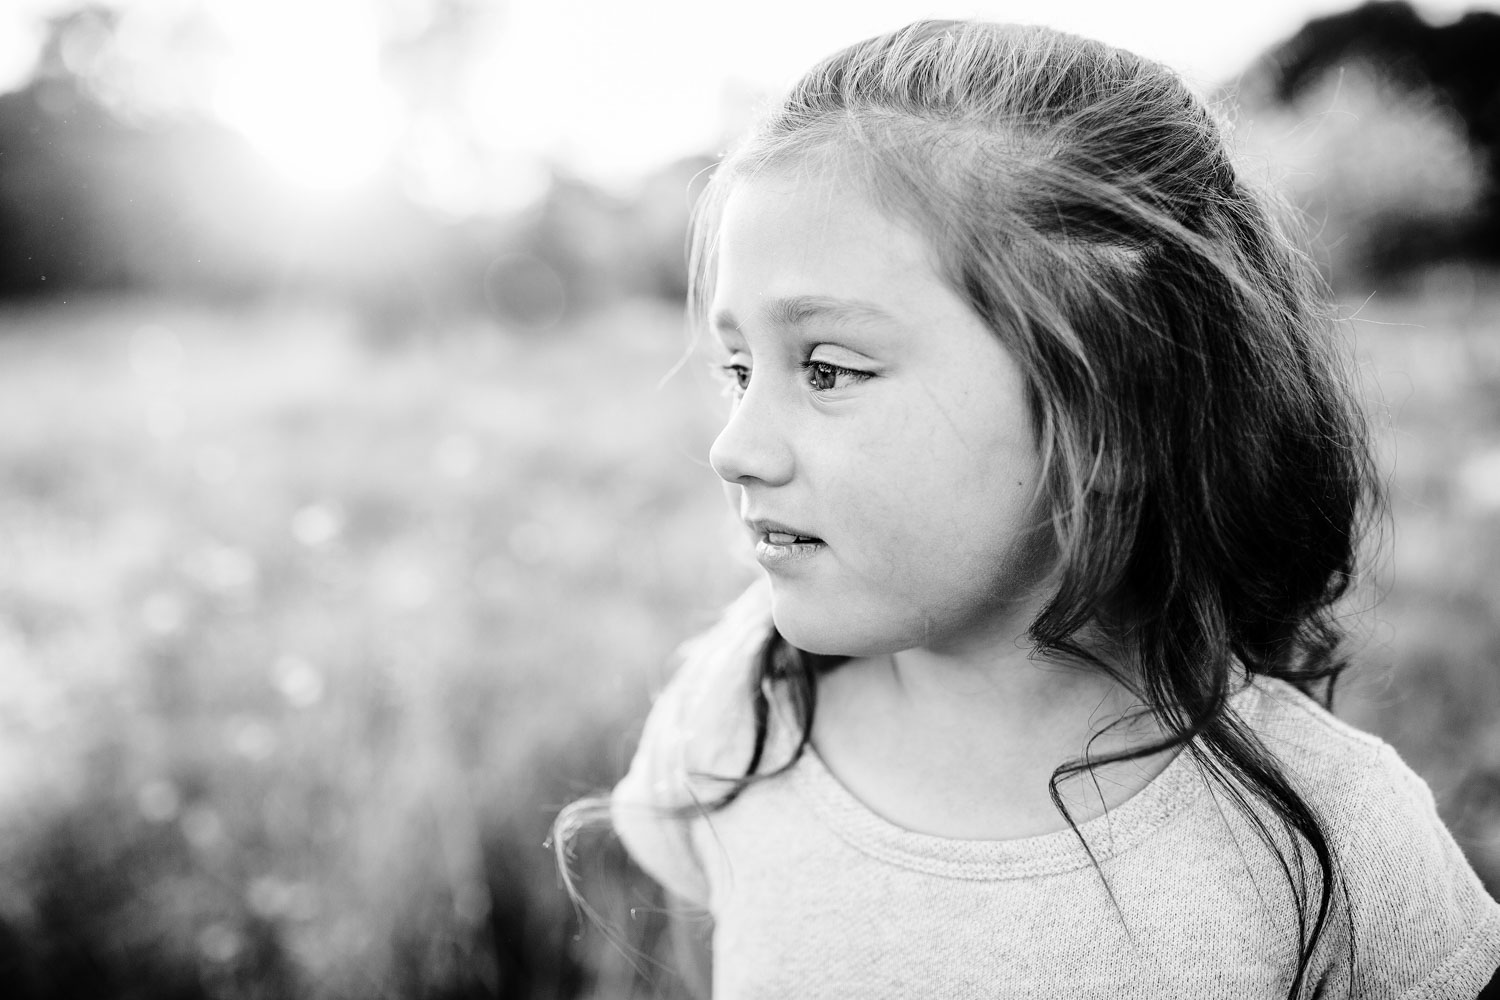 A girl looks to the side in this black and white portrait taken during a family photo session in Sacramento, California by Amy Wright.